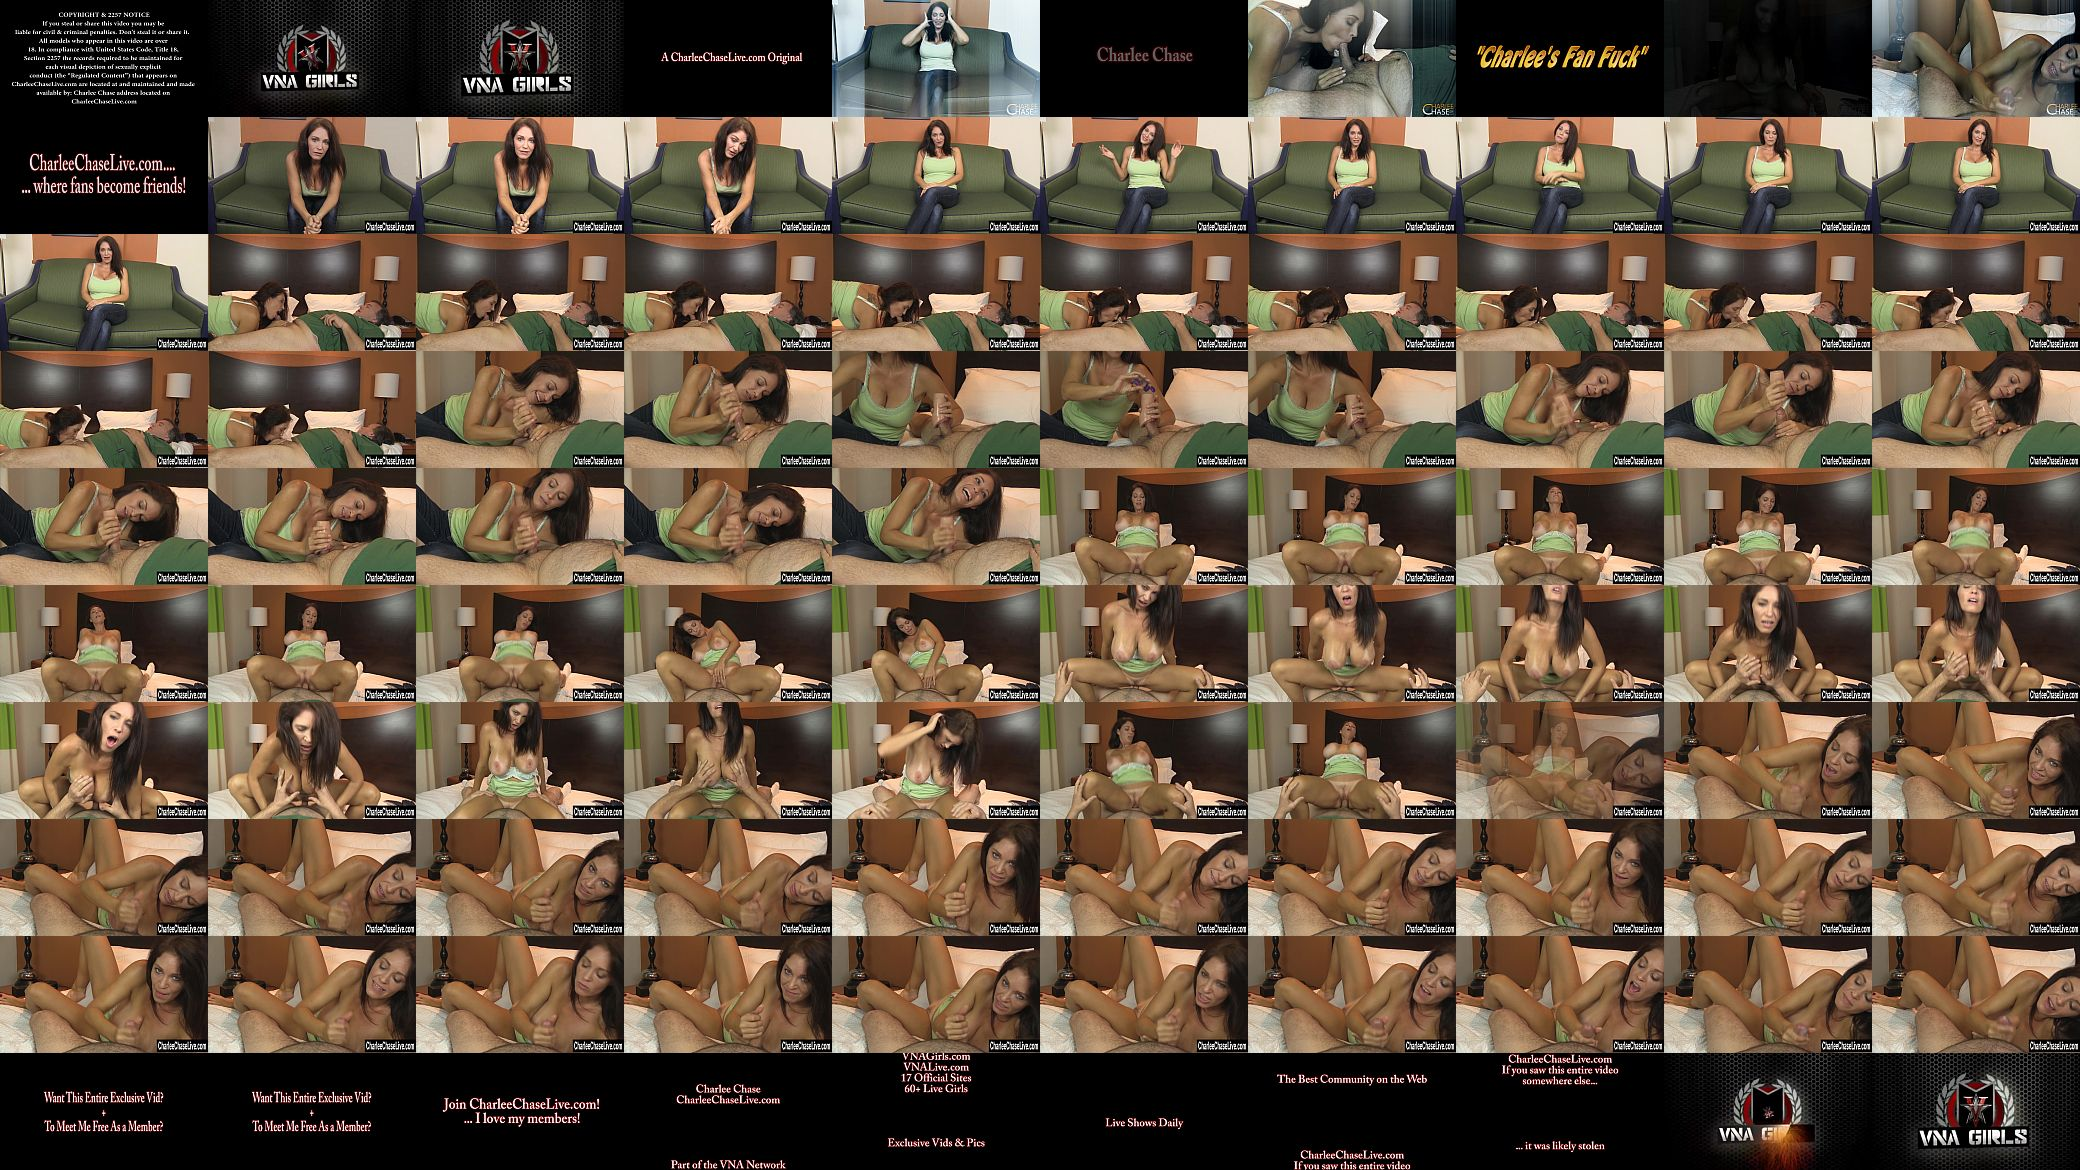 Actual-Porn.org Charlee Chase Site Actual-Porn.org pornstar charlee chase makes one of her website members wet